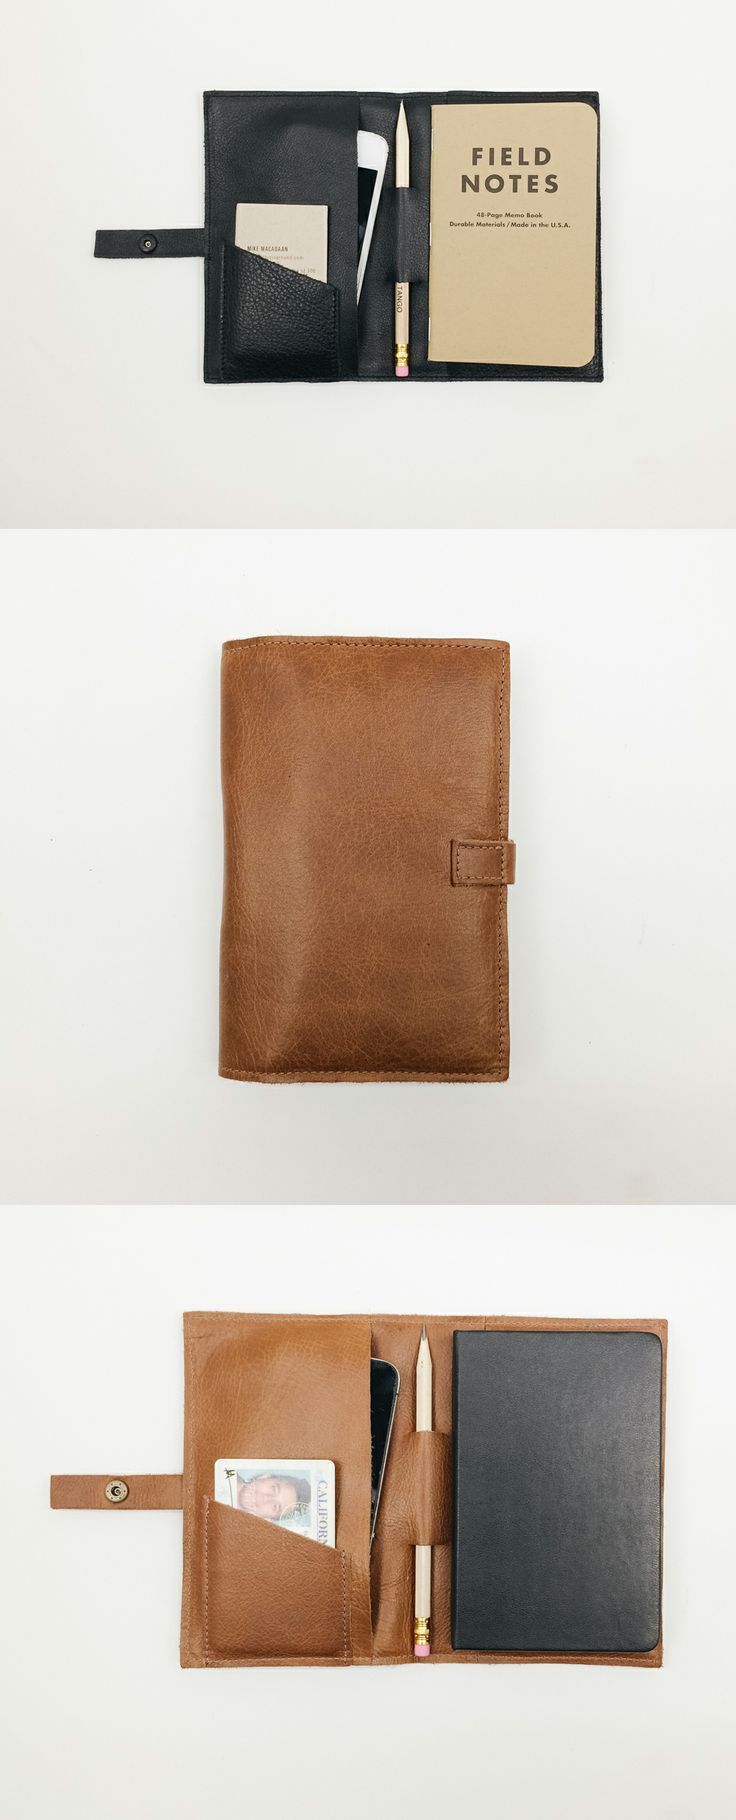 leatherback writer 2 / phone, wallet, pencil, notebook https://www.kickstarter.com/projects/macadaan/cargito-charging-ipad-case